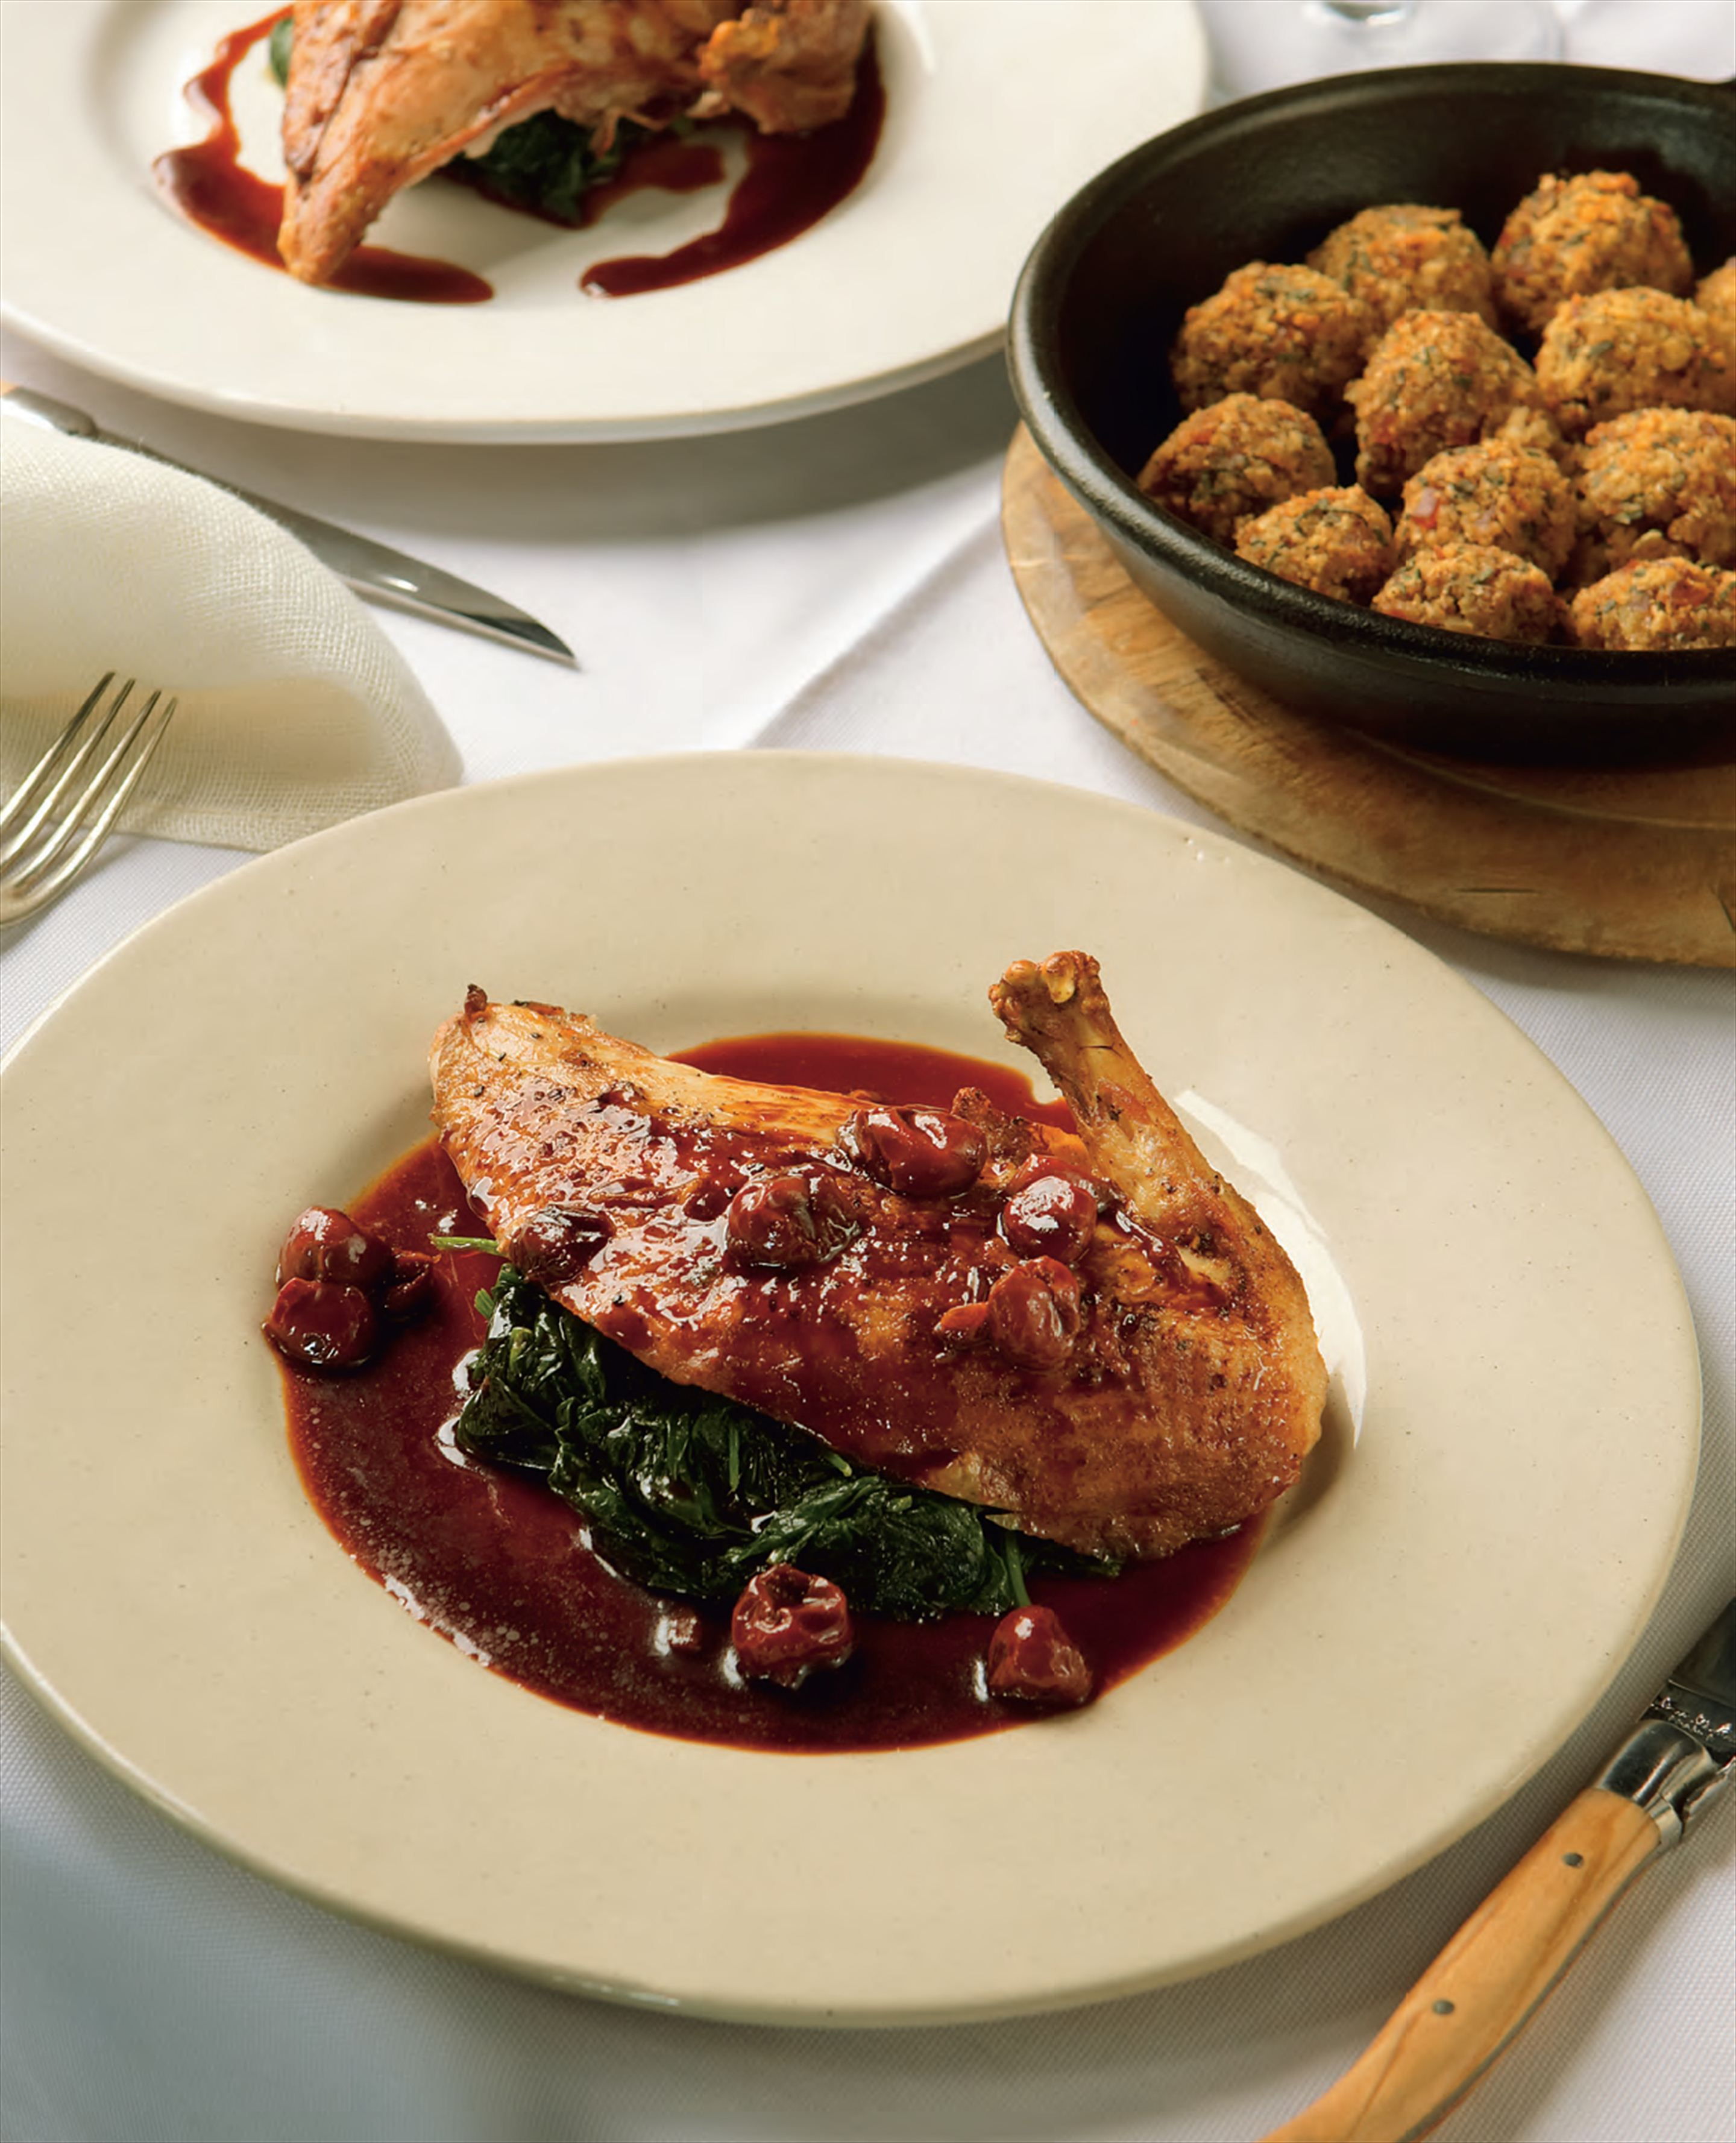 Roast pheasant with caramelised cherry and brandy glaze